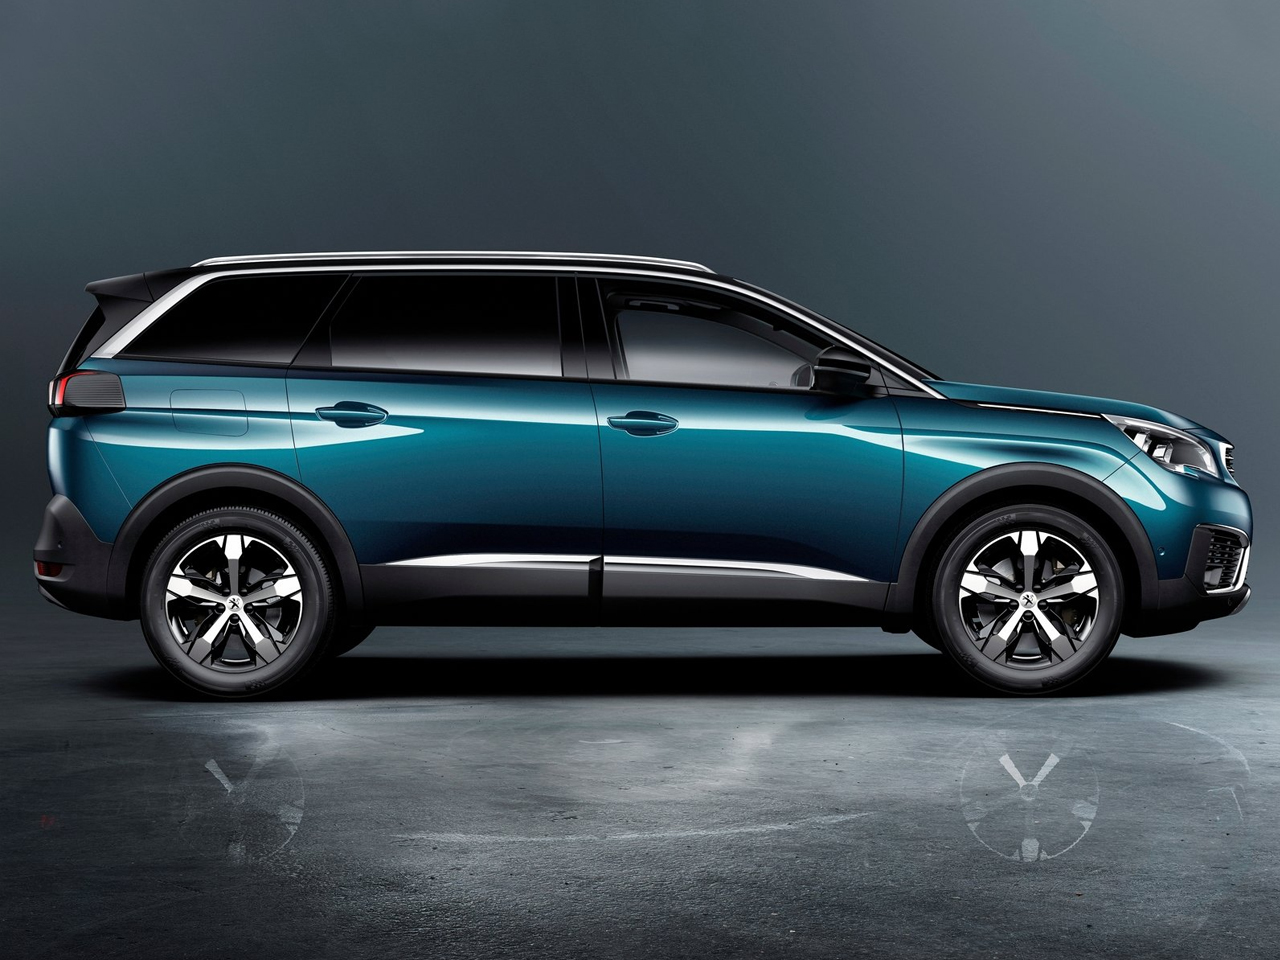 Lateral Peugeot 5008